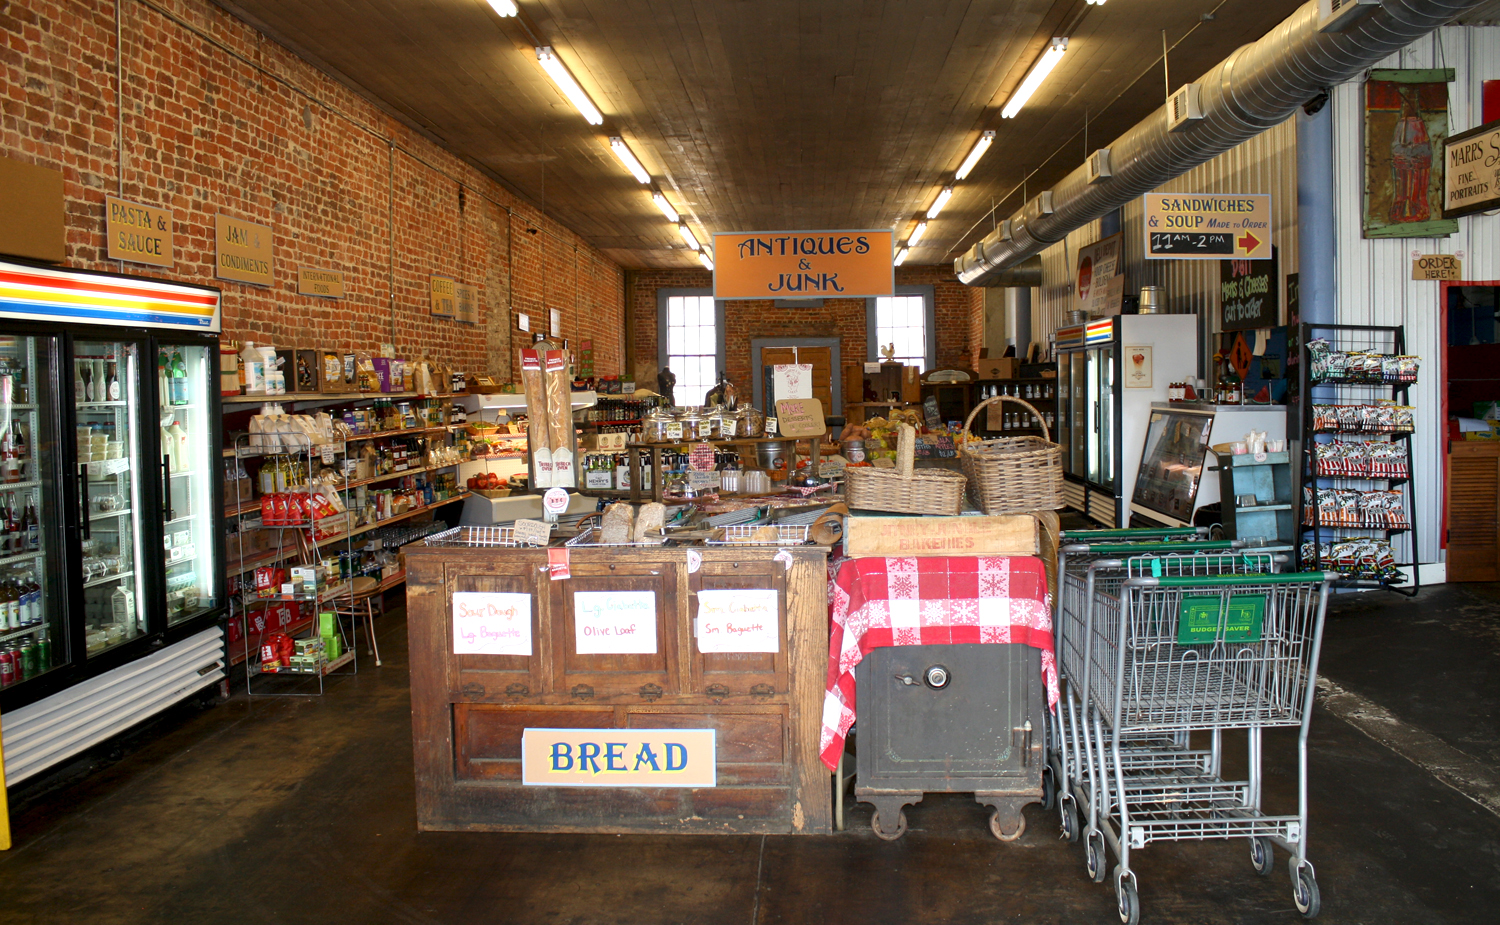 B.T.C. Old Fashioned Grocery in Water Valley. Photo by Jeff McVay